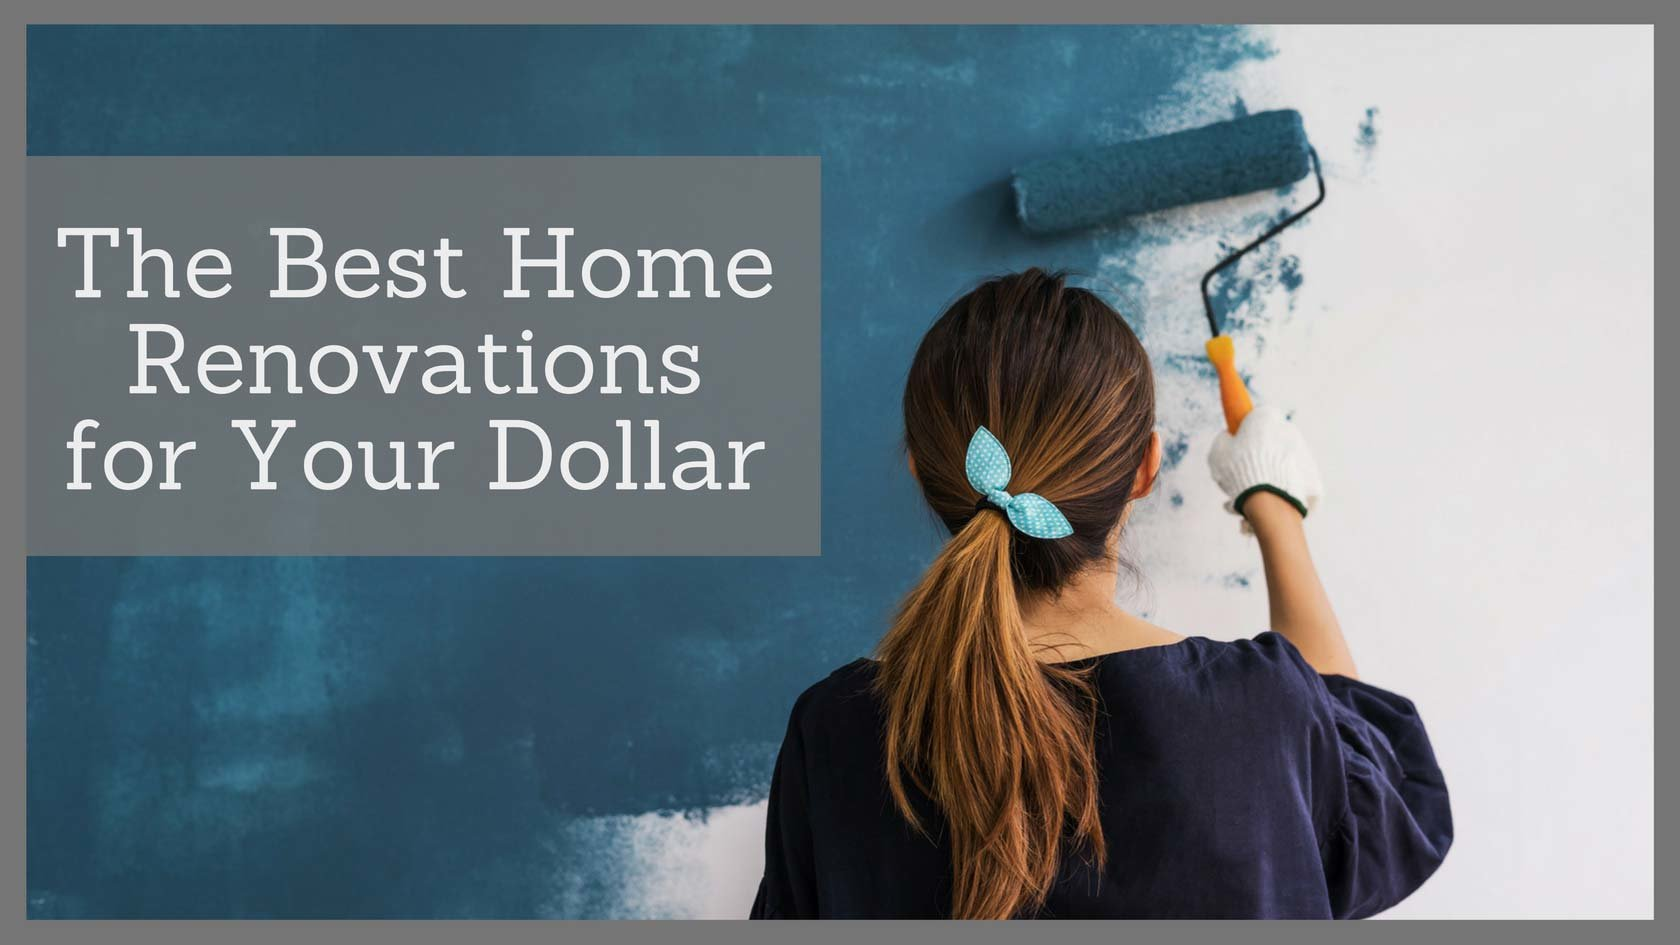 The Best Home Renovations for Your Dollar